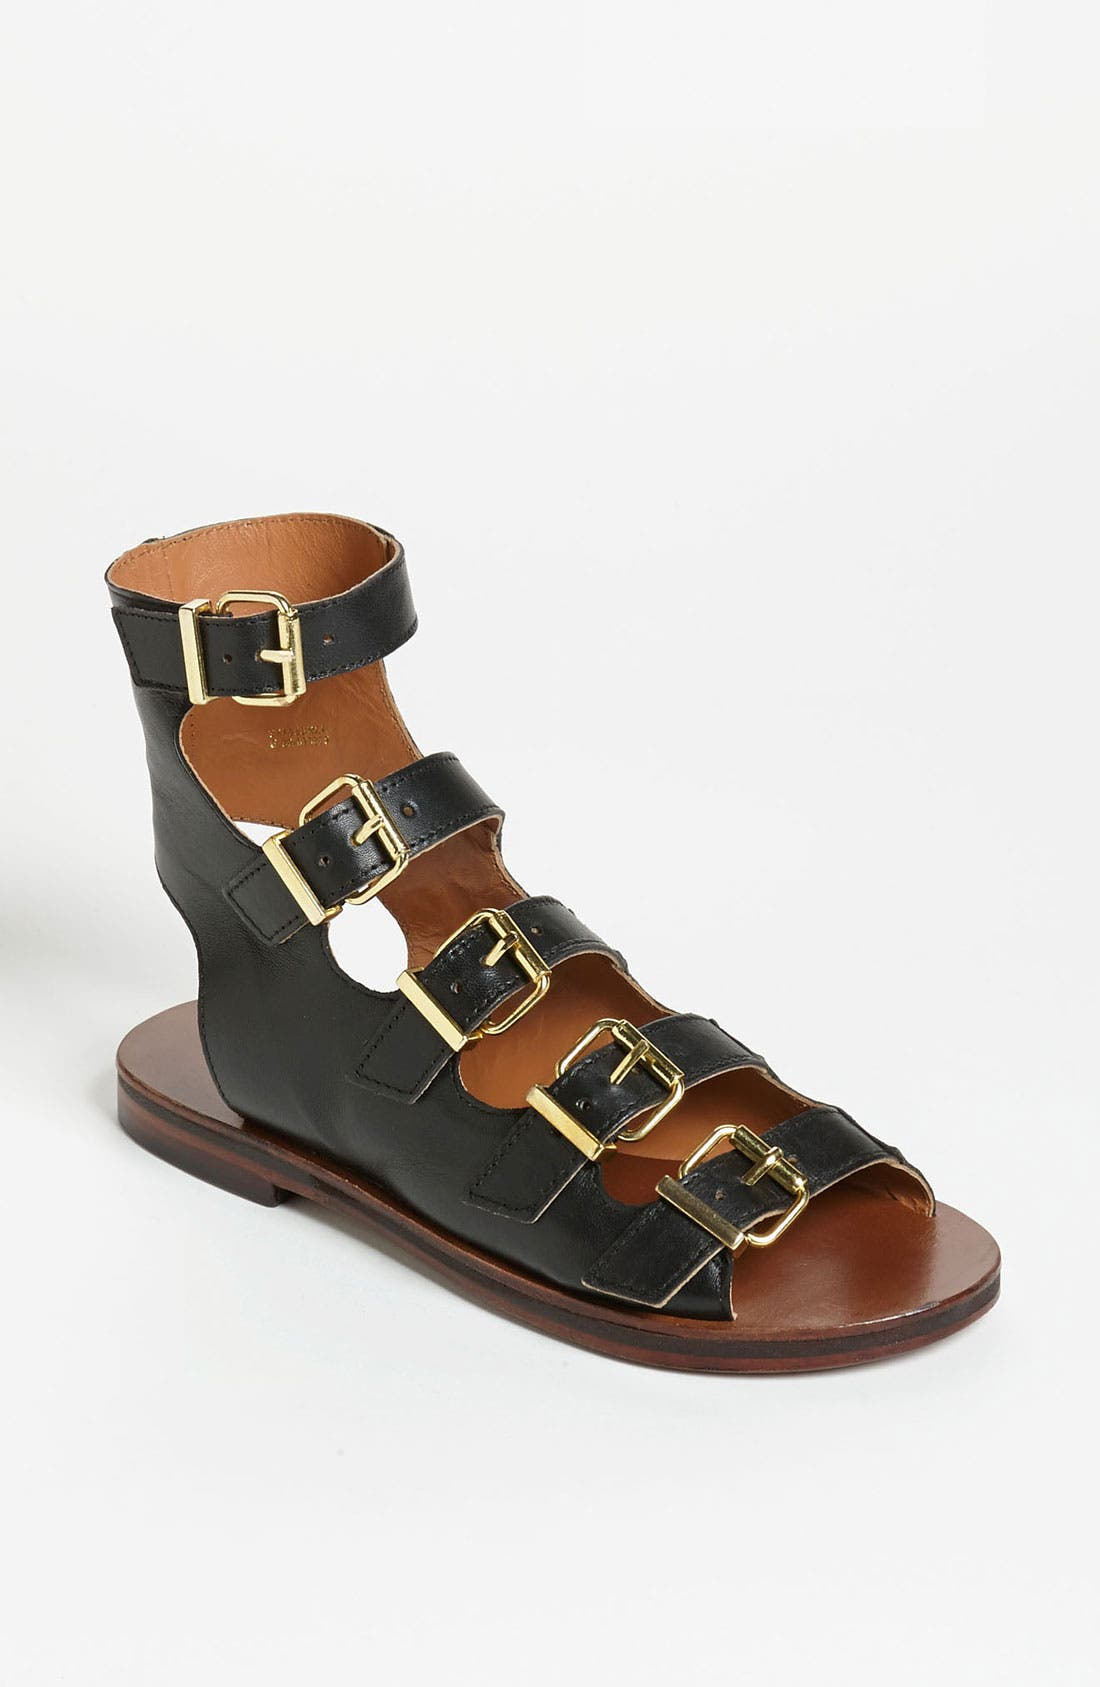 Alternate Image 1 Selected - Topshop 'Fable' Multi Buckle Sandal